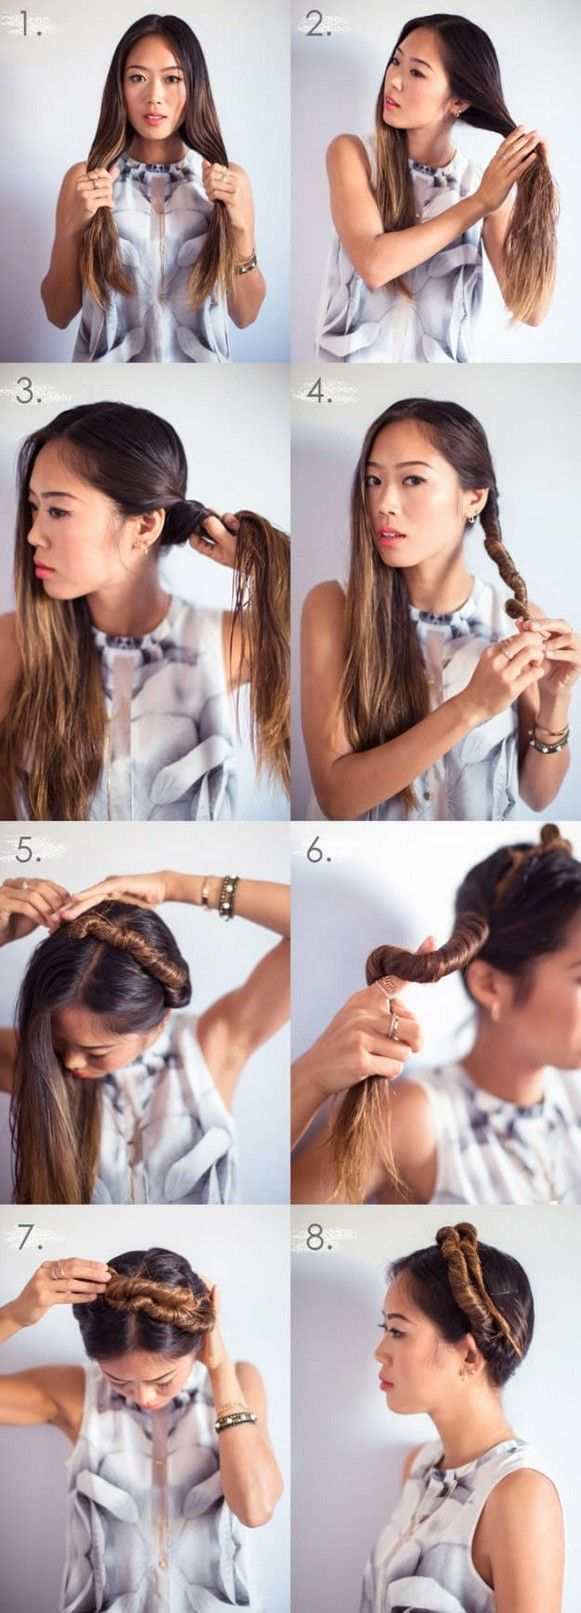 Awesome hairstyles for school hairstyles haircuts hair